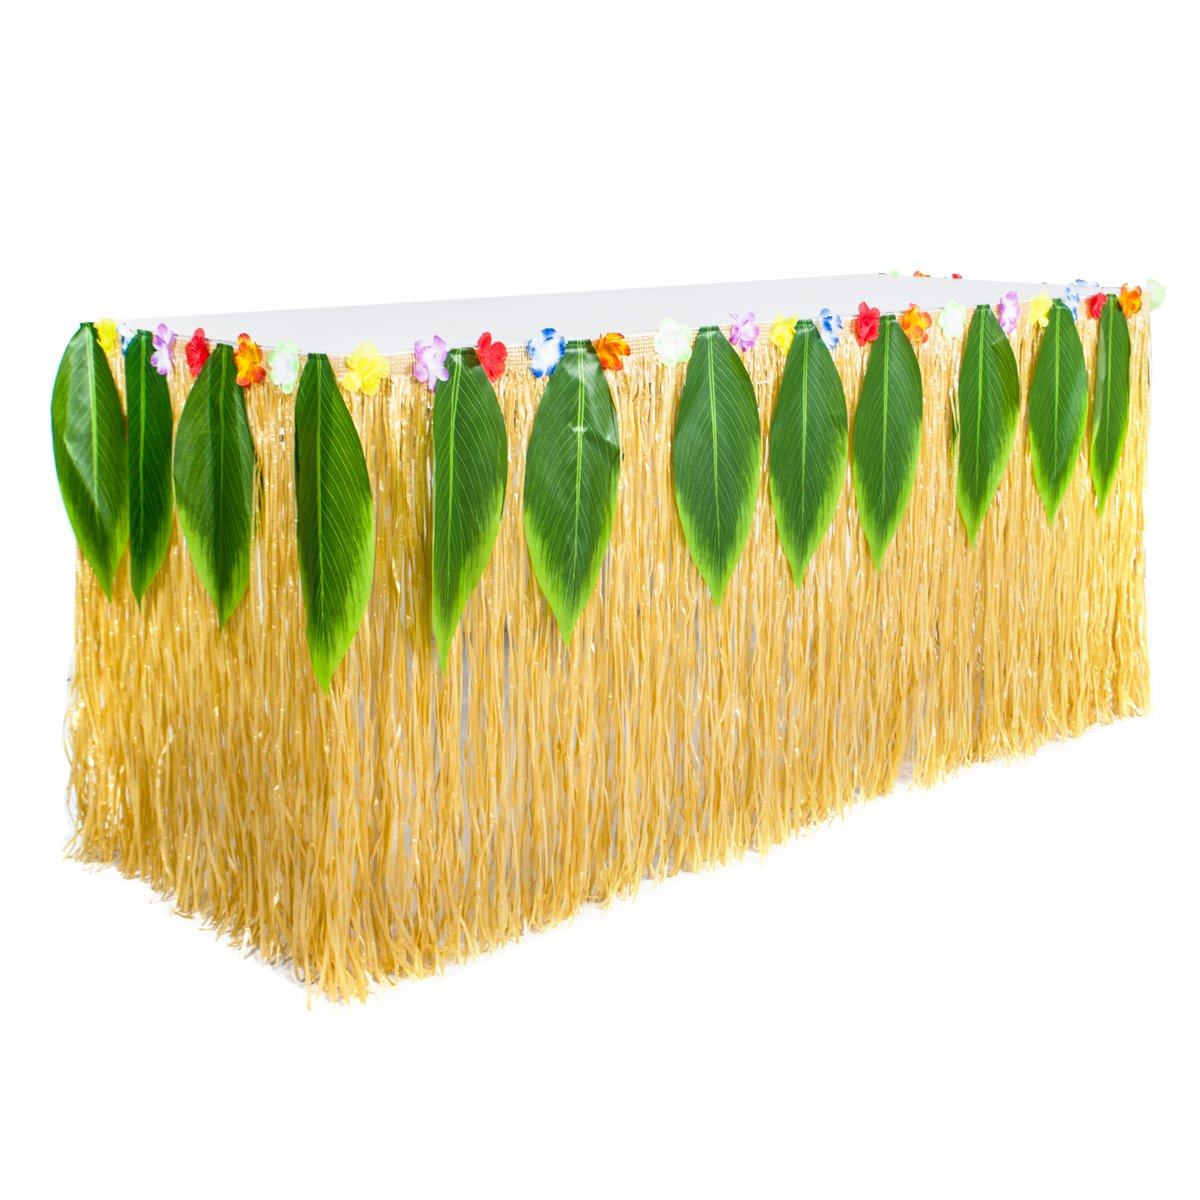 9ft Yellow Luau Table Skirt Hawaiian Grass Table Skirt with 15pcs Luau Leaf and Hula Hibiscus Flower for Luau Party Supplies (Raffia Table Skirt)